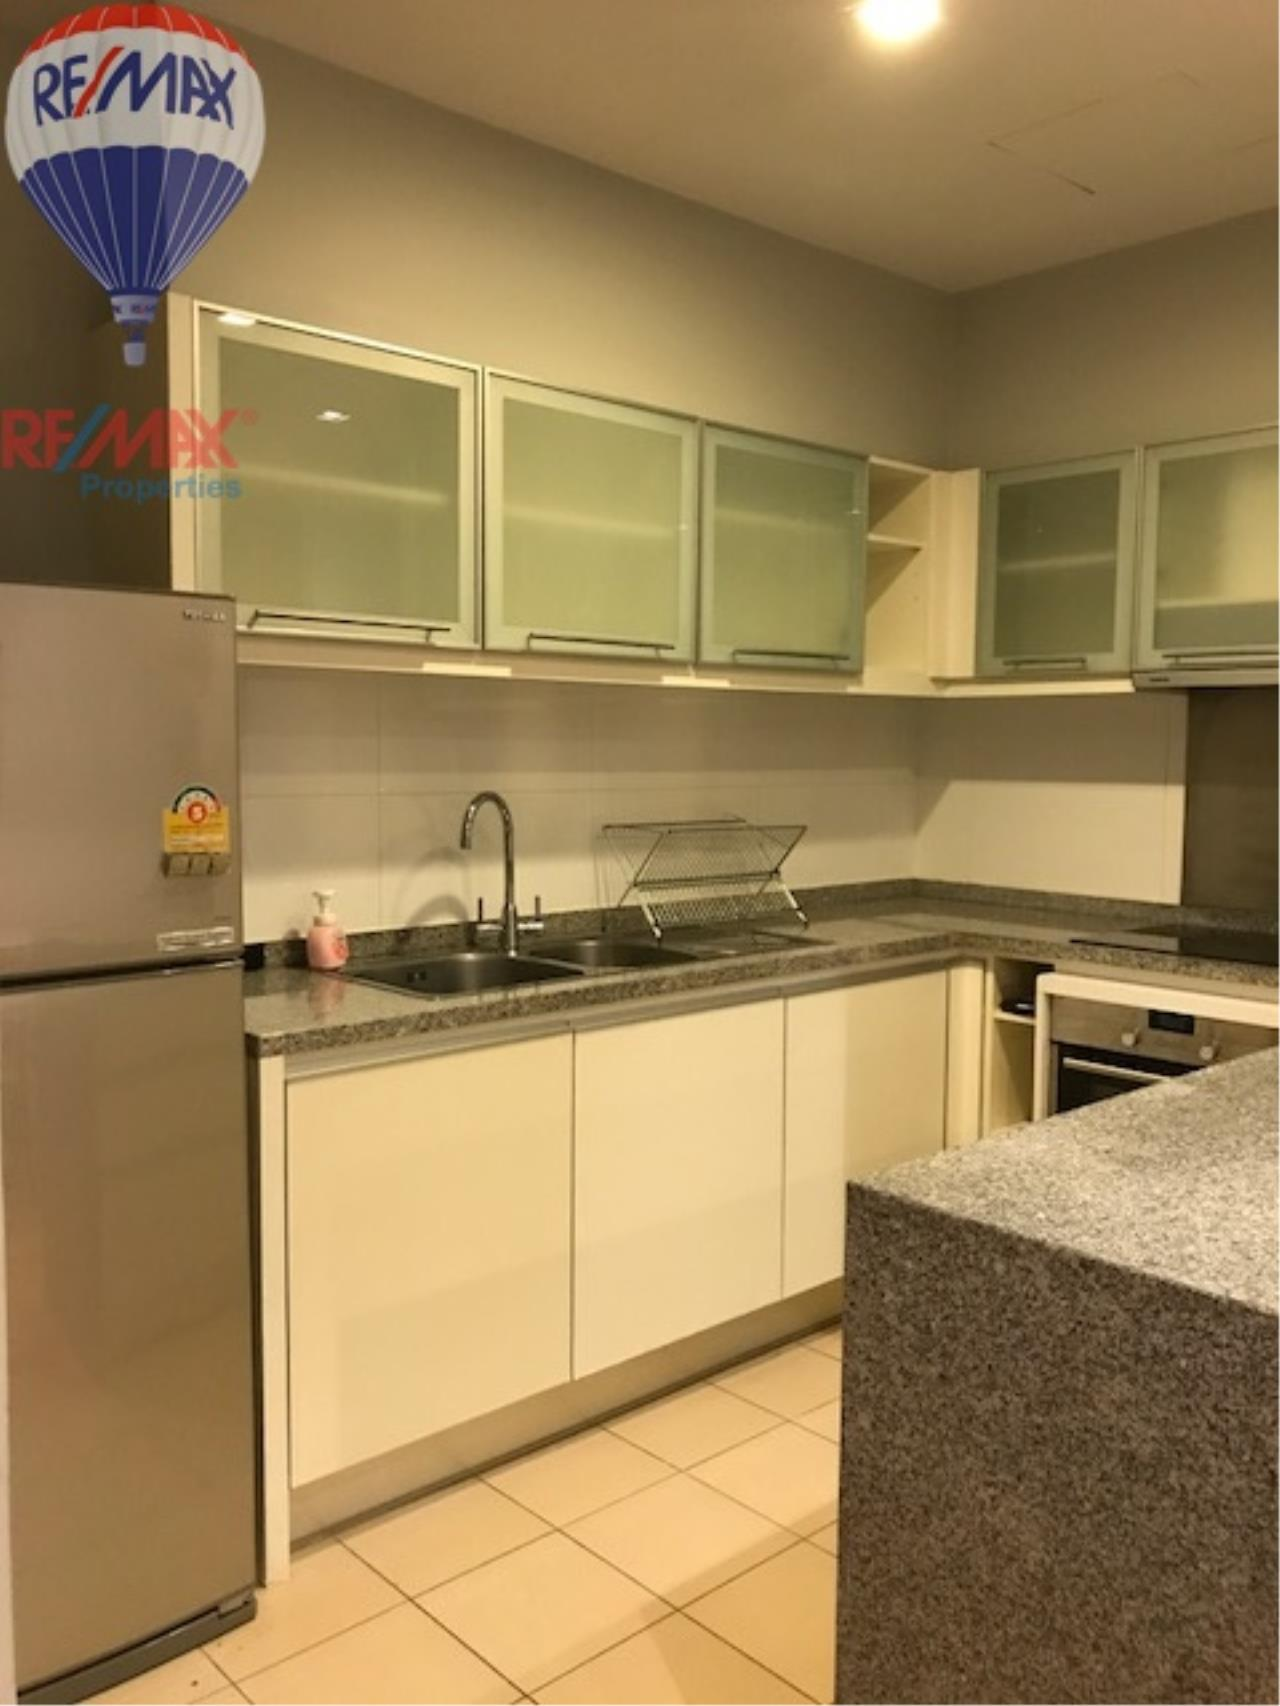 RE/MAX Properties Agency's RENT 2 Bedroom 90 Sq.m at Millennium Residence 5